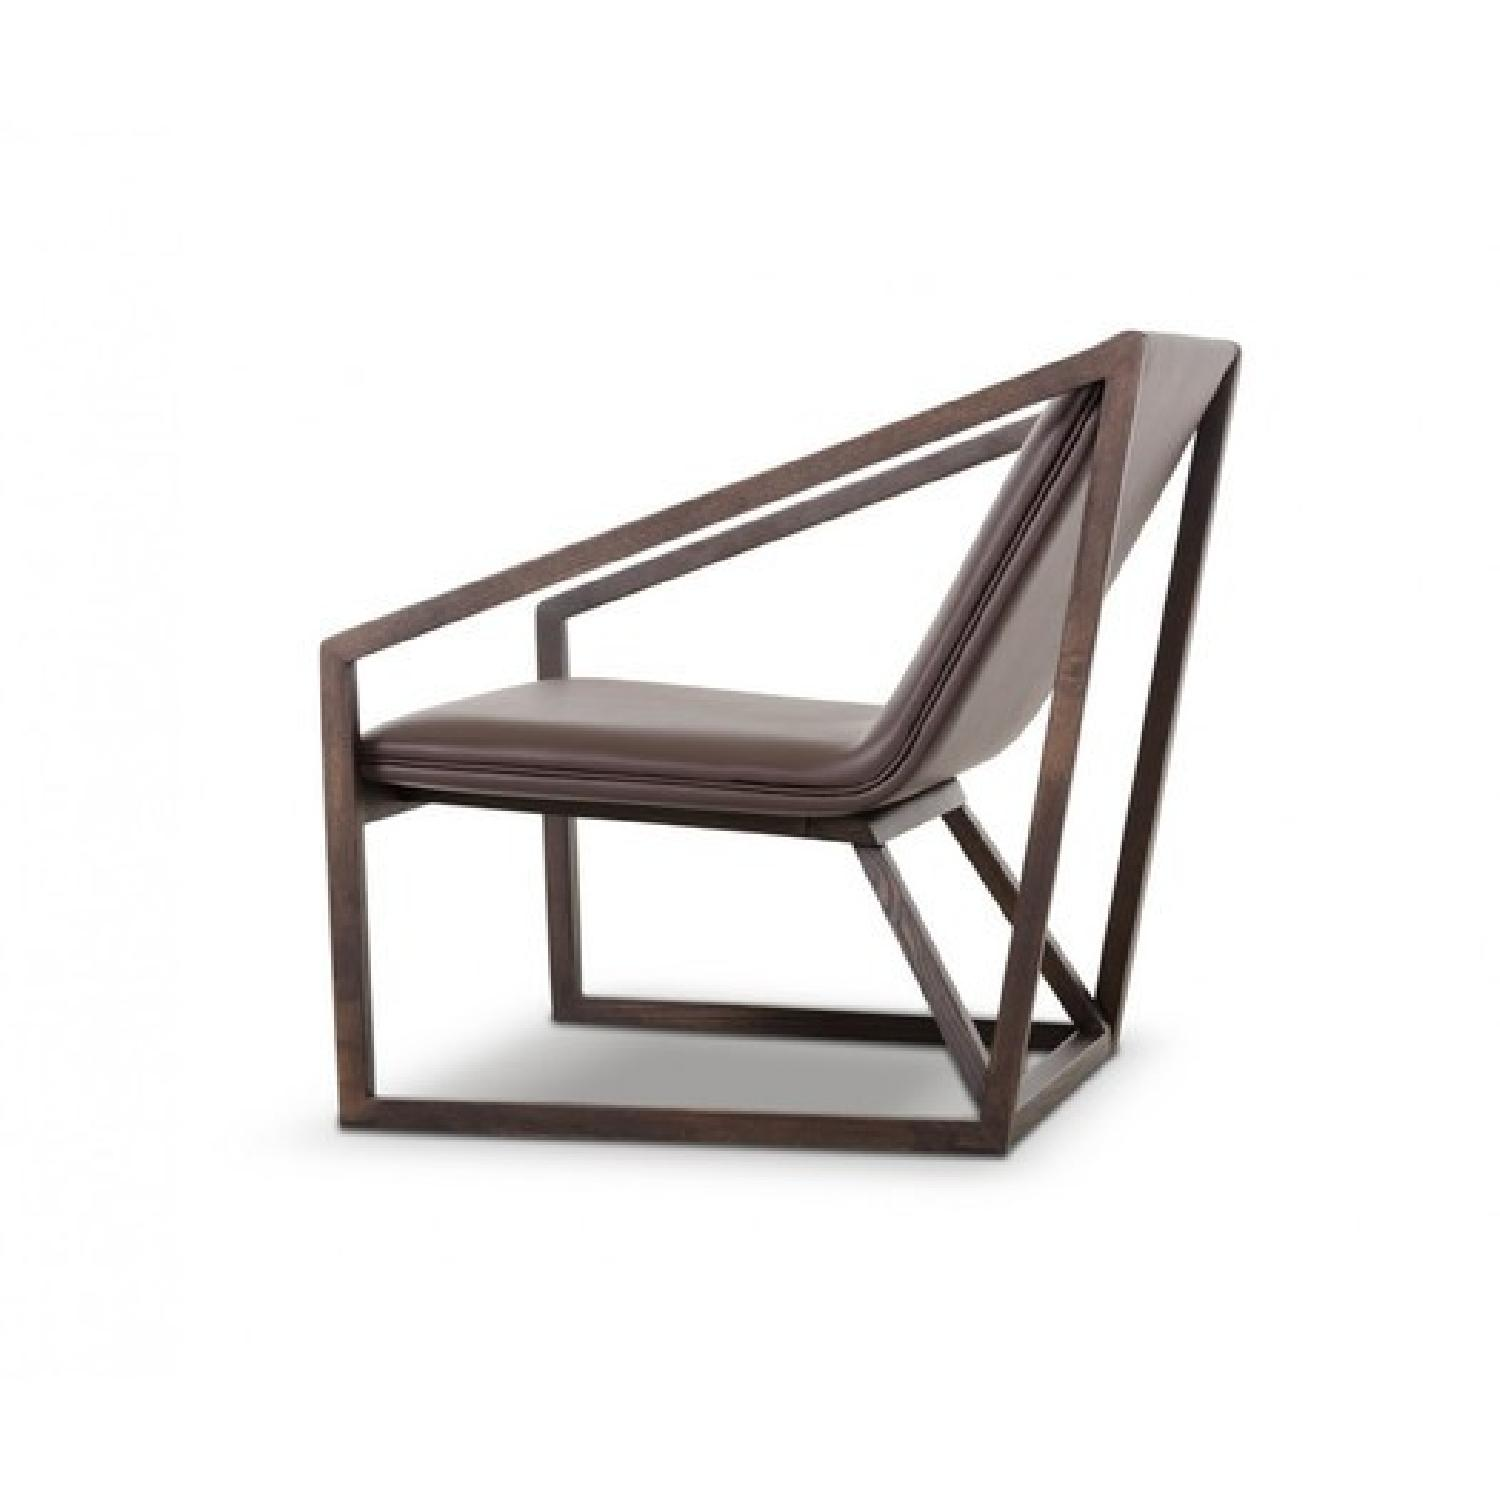 VIG Furniture Divani Casa Taranto Lounge Chair - image-2